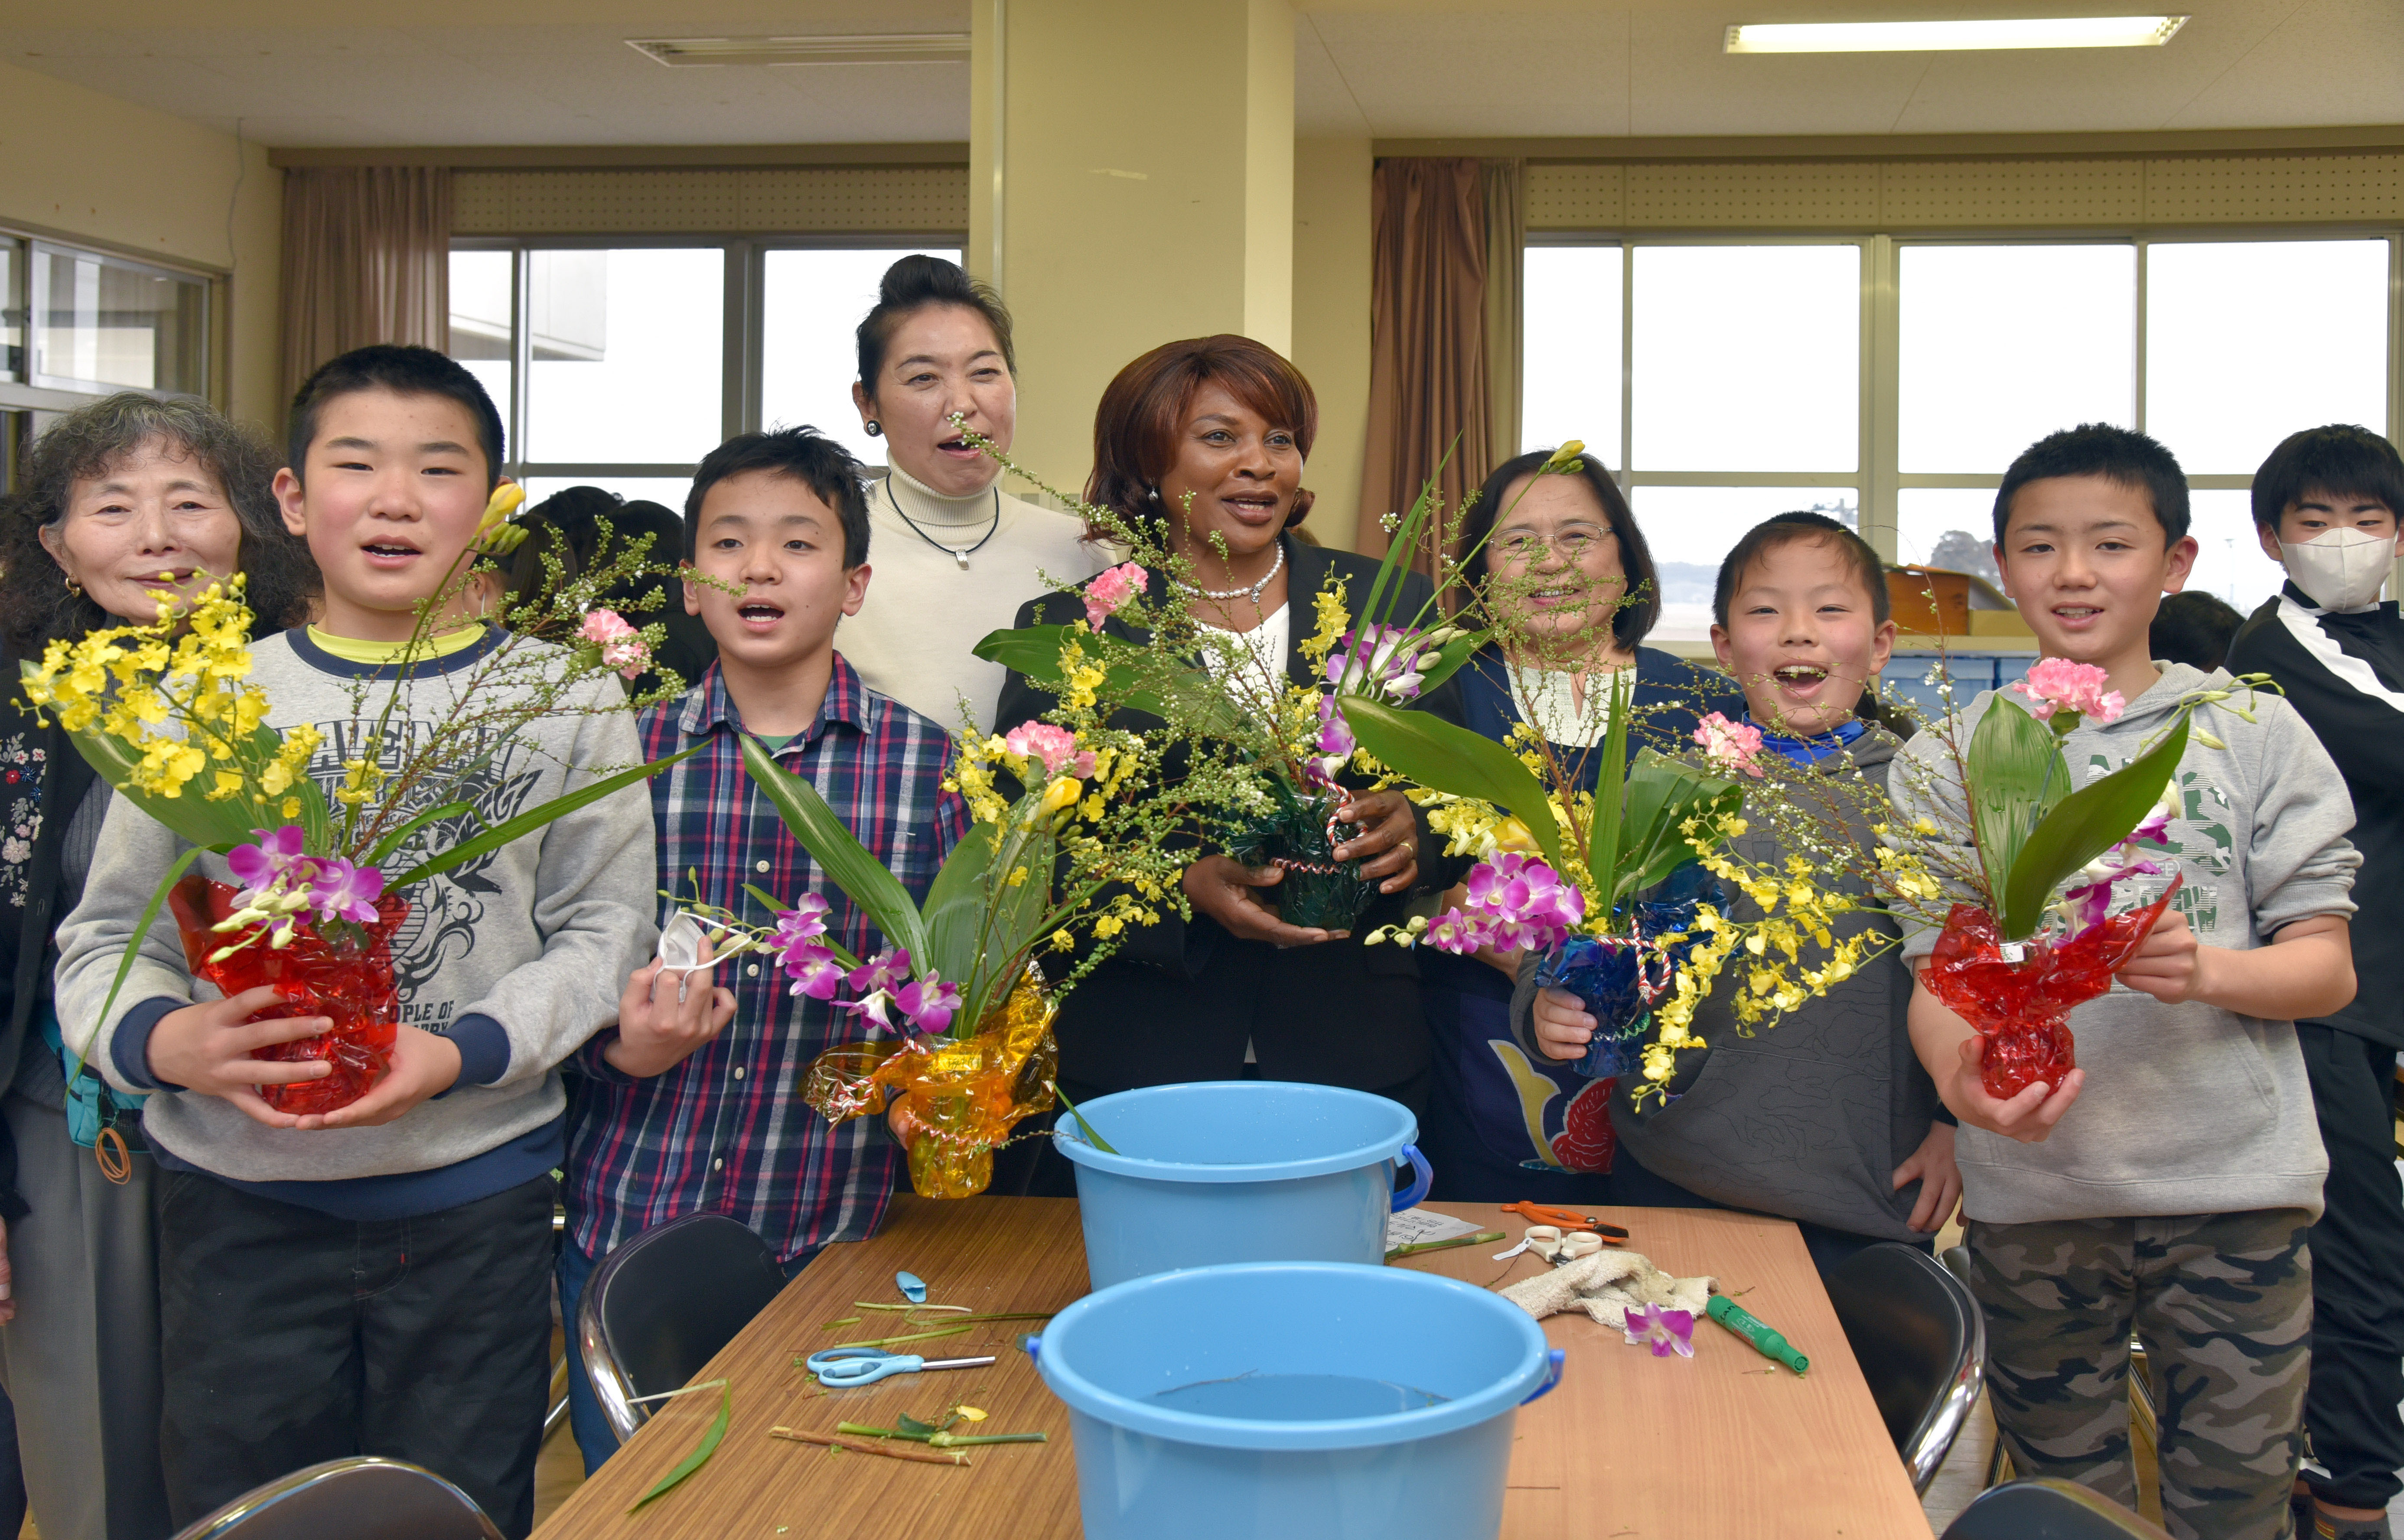 Solange P. Weya, wife of the Cote d'Ivoire ambassador (center), Ikebana International members and sixth-grade students show off their projects at an Ikebana Workshop, the fifth such workshop since the Great East Japan Earthquake and tsunami, at IItoyo Elementary School in Soma, Fukushima Prefecture, on March 2. | IKEBANA INTERNATIONAL